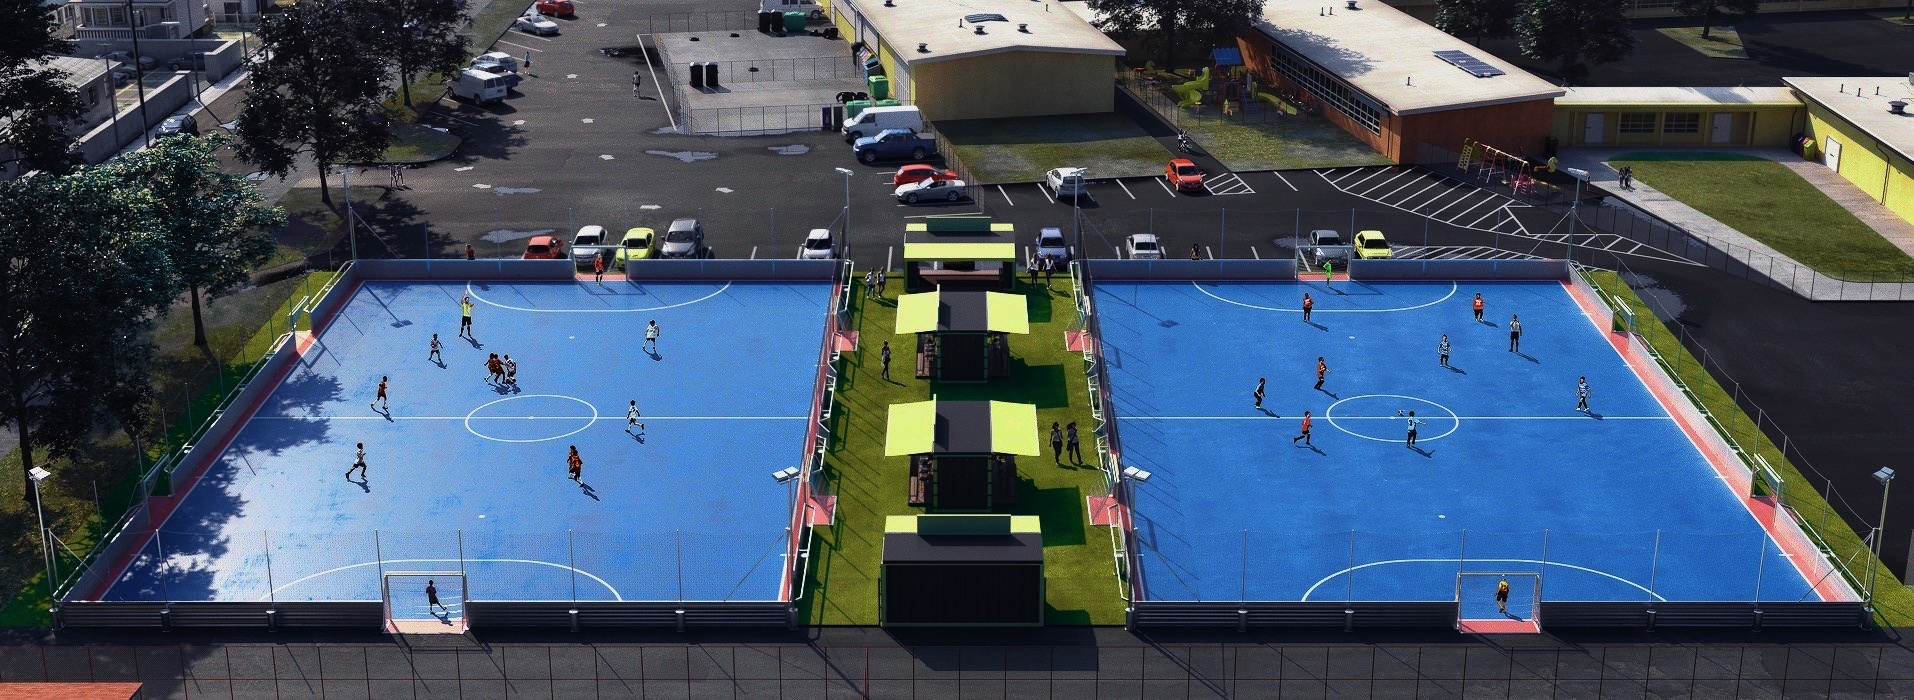 outside-urban-futsal-court-811176-edited